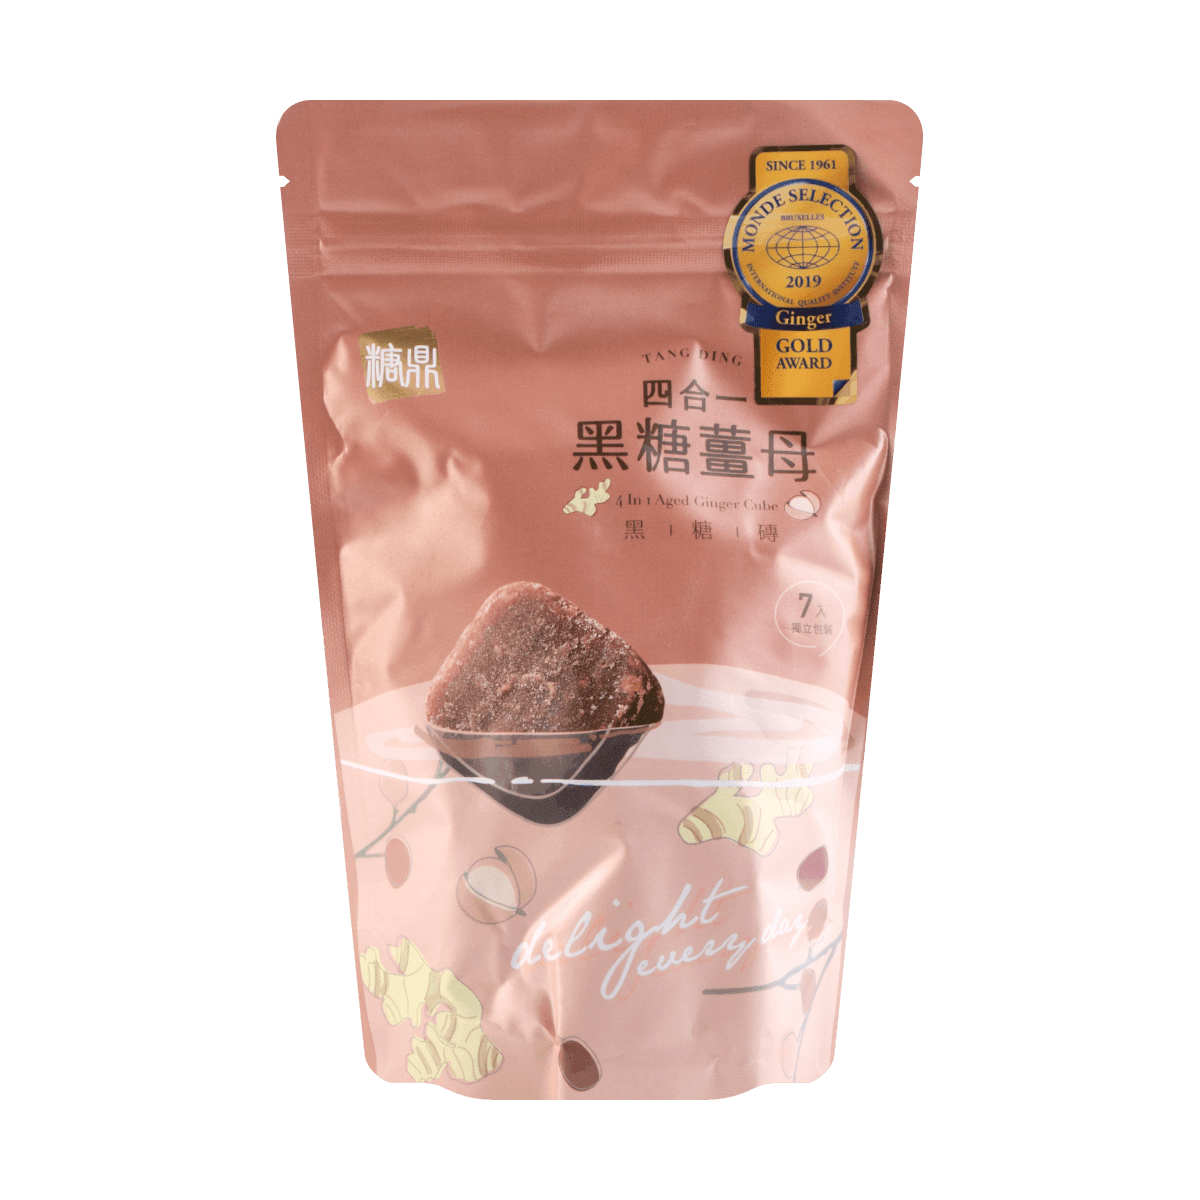 Yamibuy.com:Customer reviews:4 in 1 Aged Ginger Brown Sugar Concentration Cube 210g